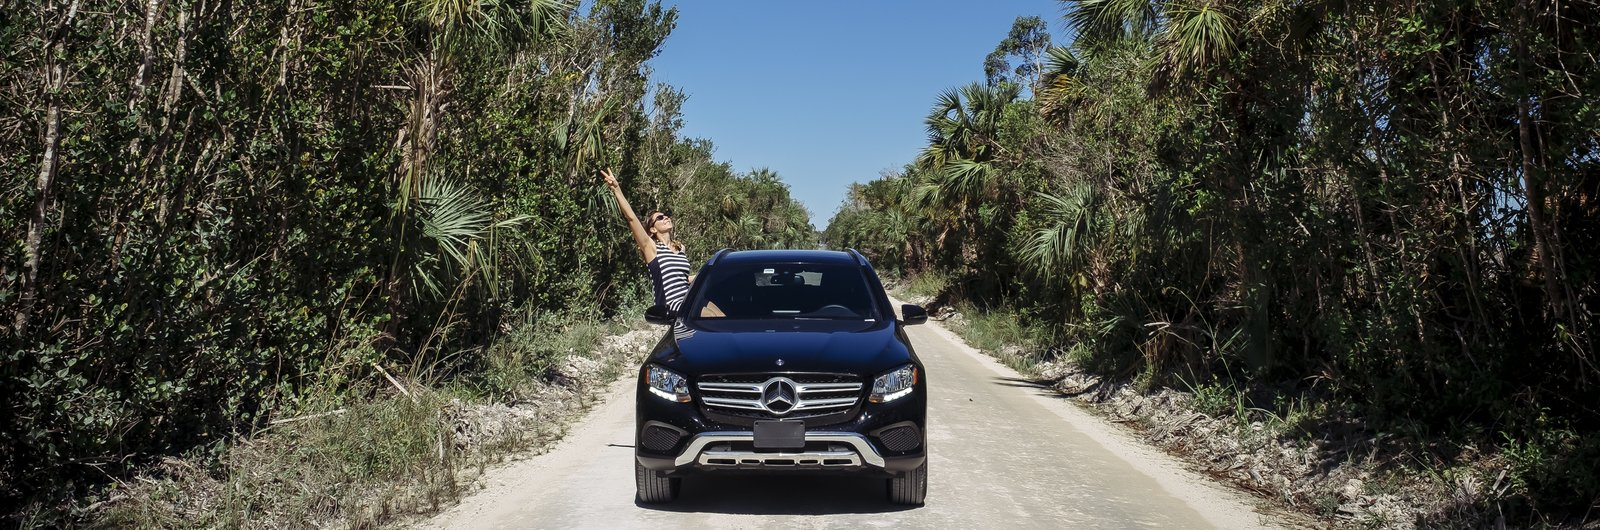 Fort Lauderdale To Orlando One Way Car Rental